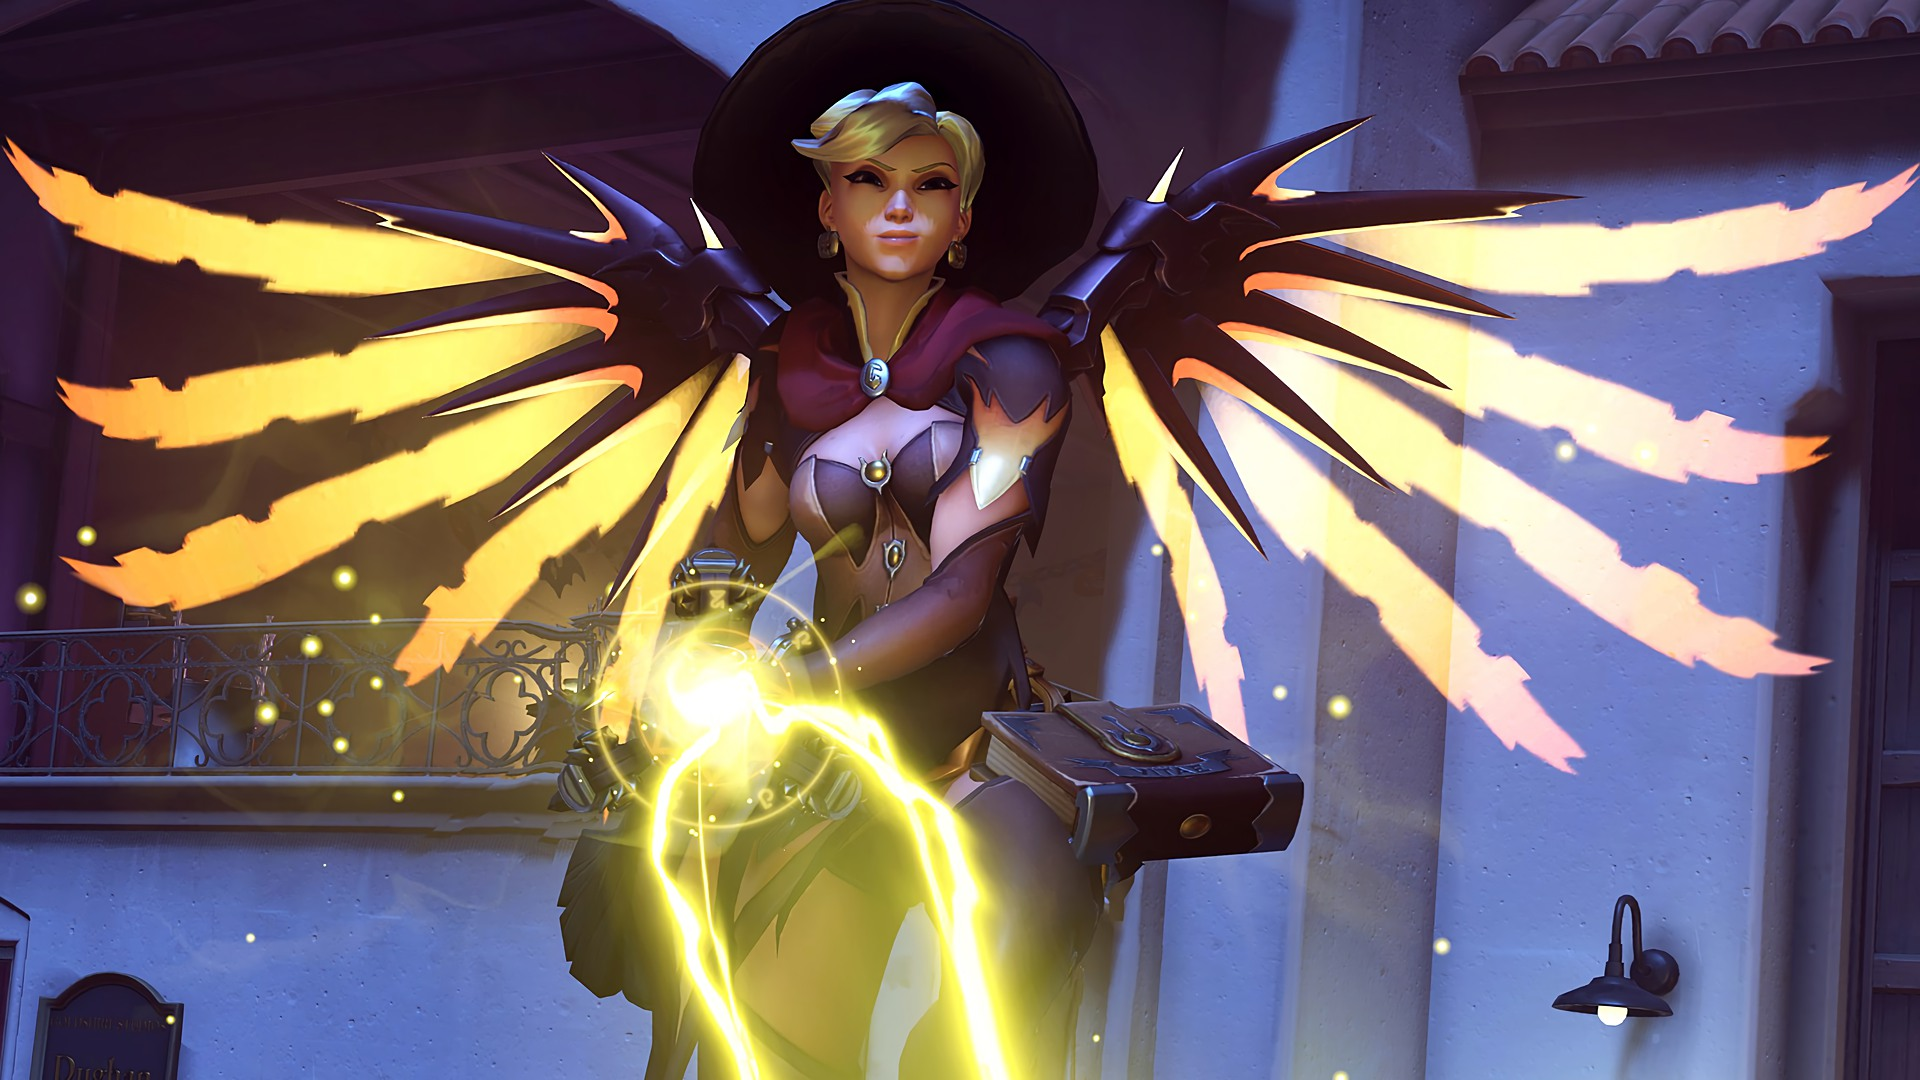 witch-mercy-overwatch-halloween-girl-(5218).jpg